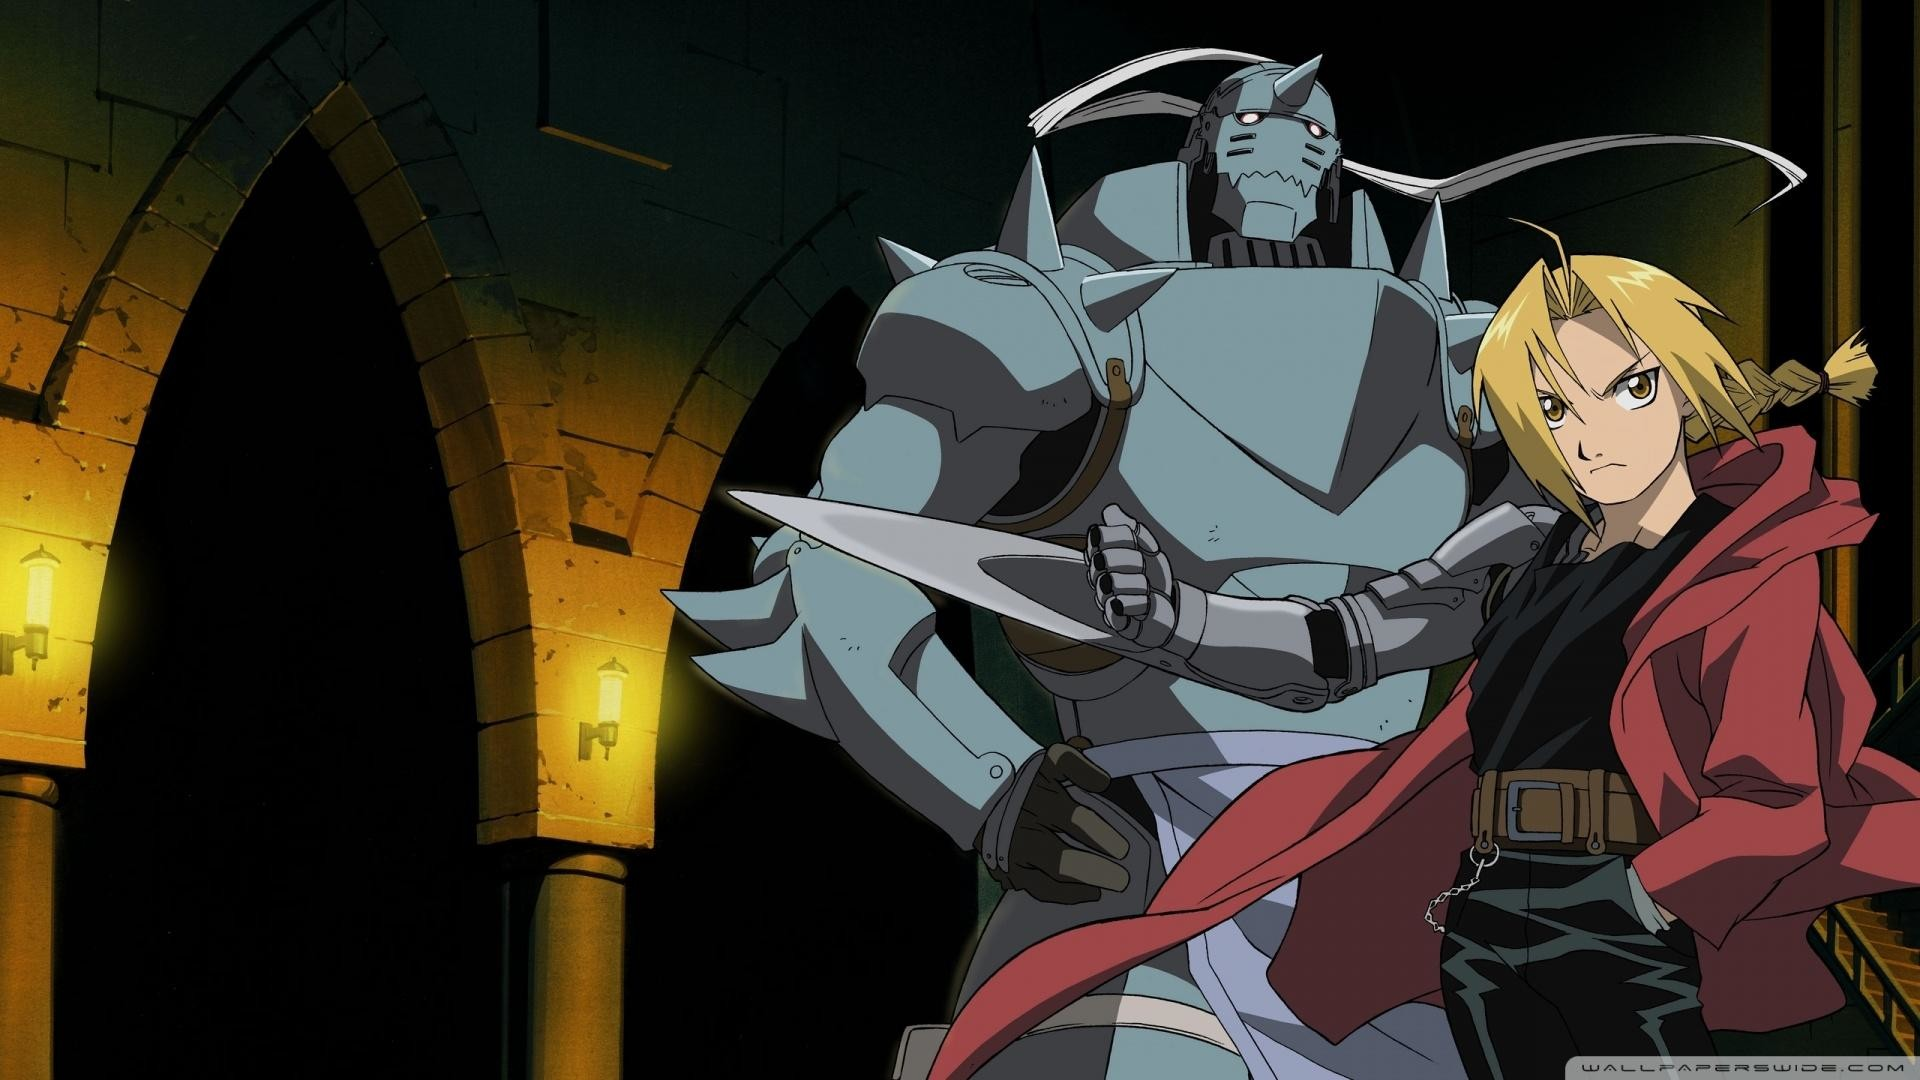 Res: 1920x1080, 10. full-metal-alchemist-wallpaper43-1-600x338